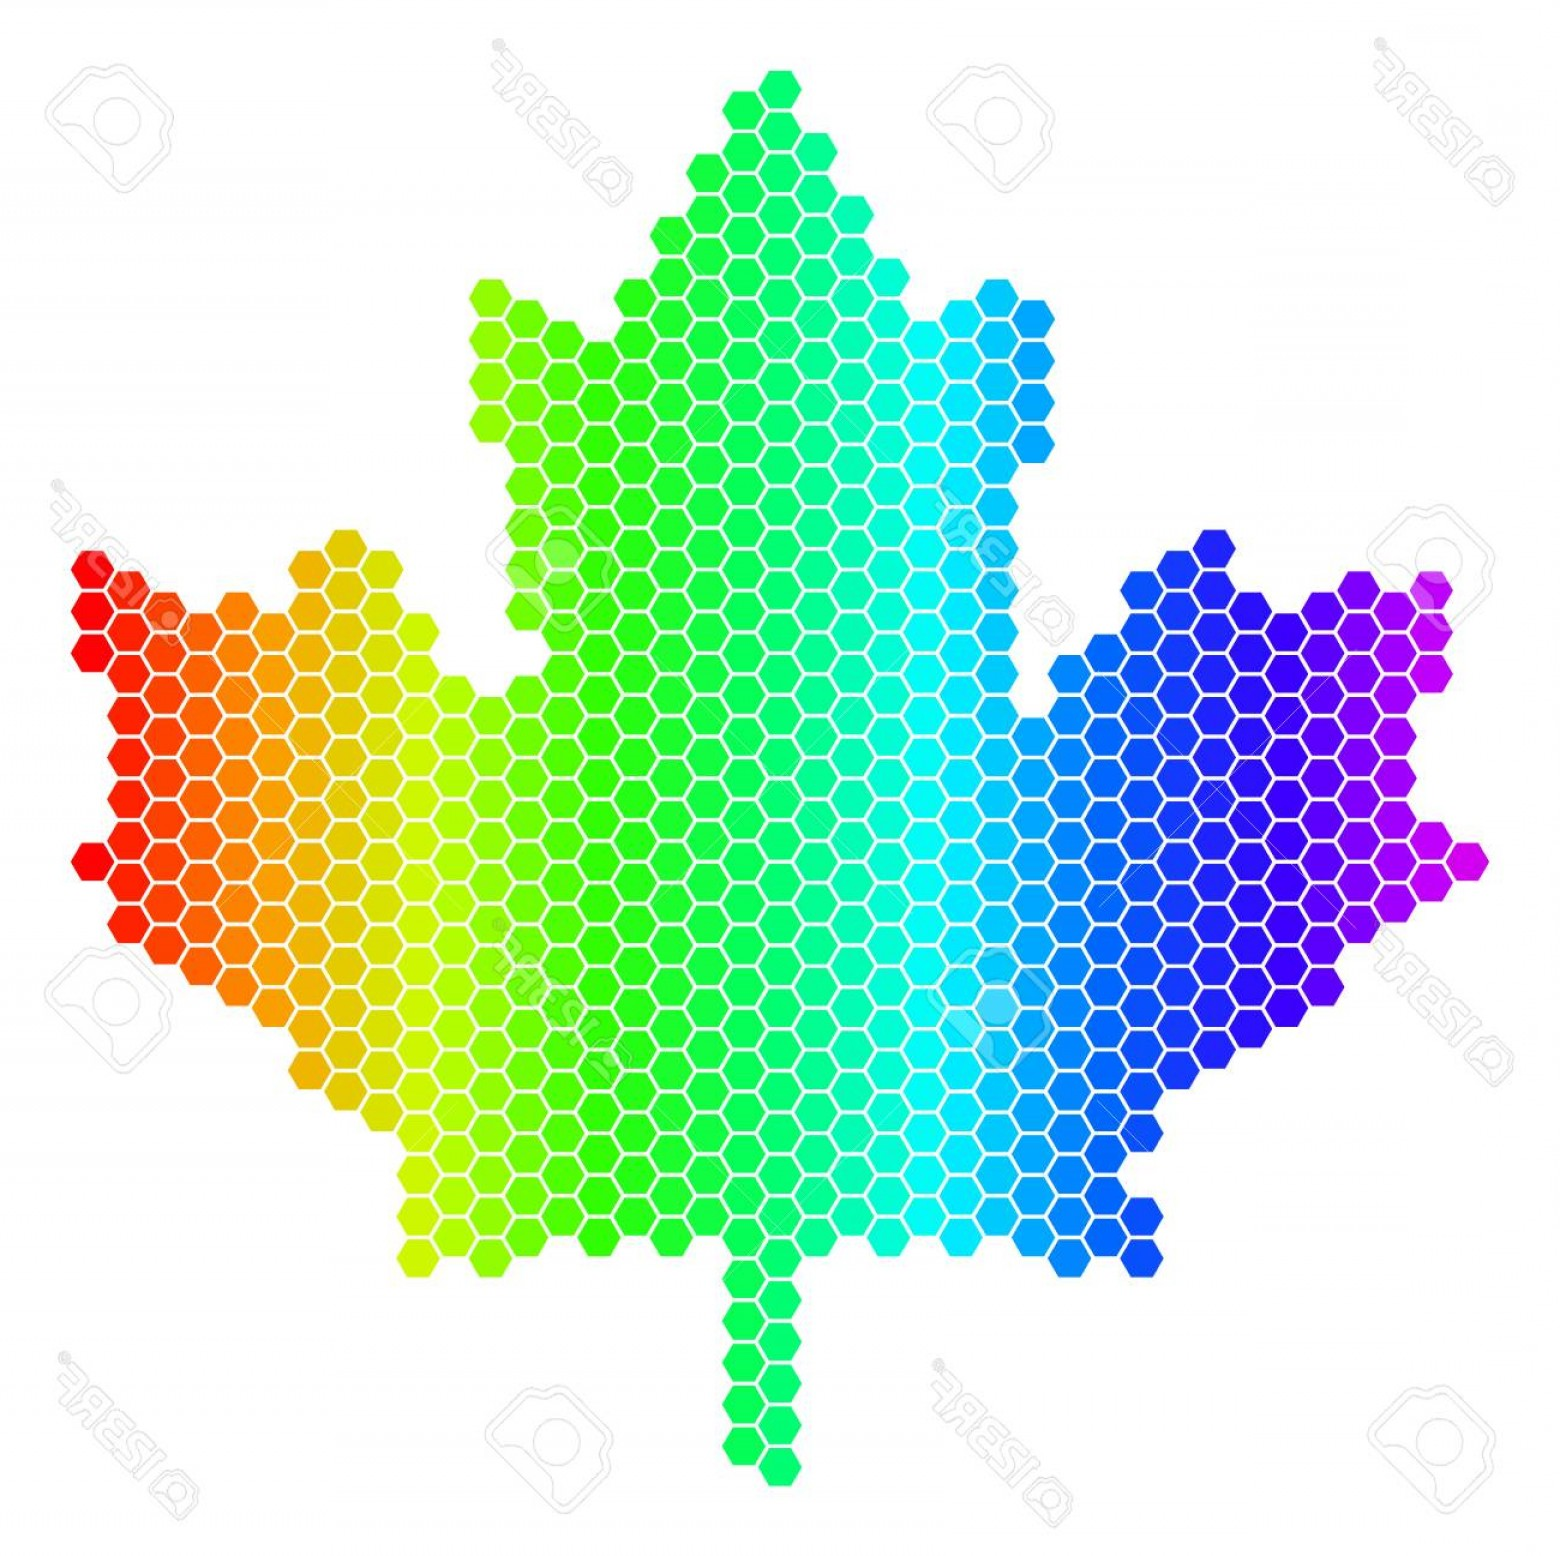 Geographic Leaf Vector: Photostock Vector Hexagon Spectrum Maple Leaf Vector Geographic Map In Bright Colors On A White Background Spectrum Ha